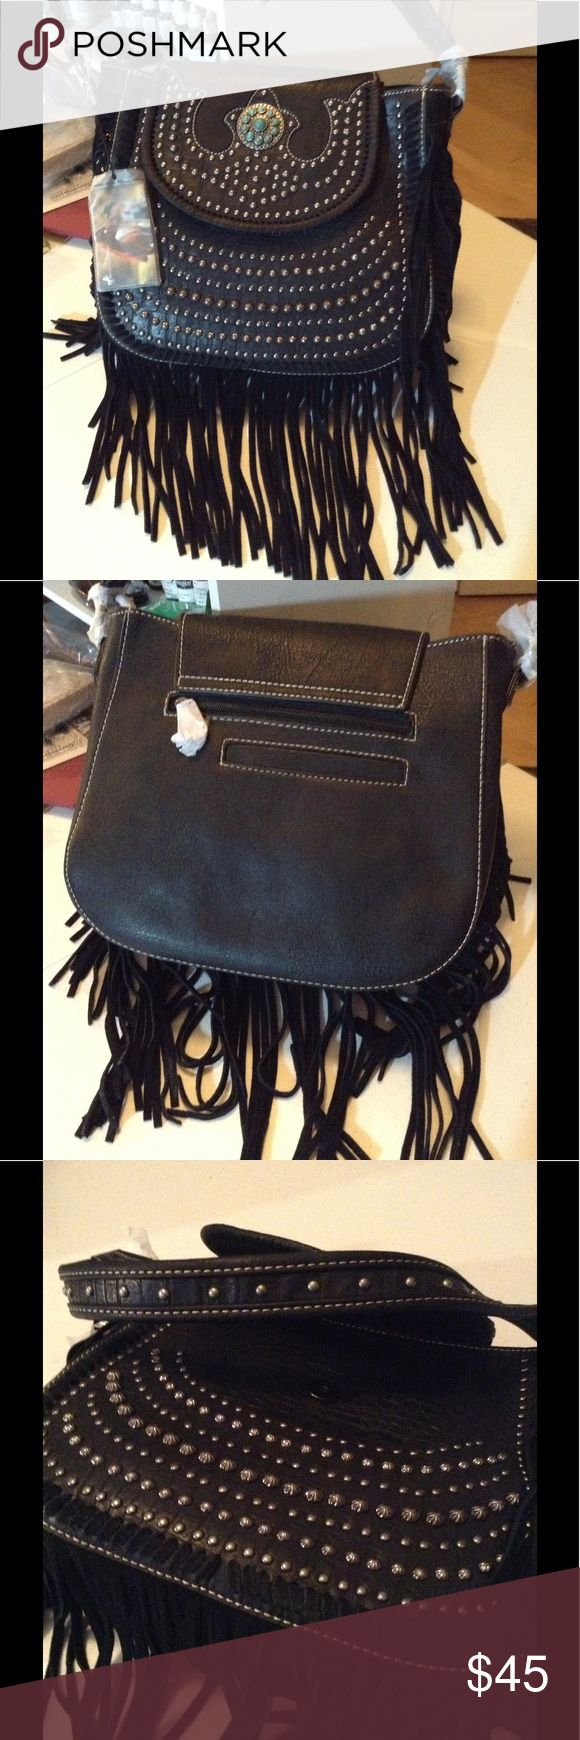 Montana West black Fringe studded purse Gorgeous handbag by Montana west it is approximately 11 inches high 12 inches across and 4 inches wide. It has three compartments on the inside. It is brand-new with all tags and dust cover the MSRP on this bag is $104.99. The style number is MW 197–8291 black I already have this bag in three different colors including black I was giving it as a gift and don't need another black one. It is a wonderful  Quality bag! Montana West Bags Shoulder Bags